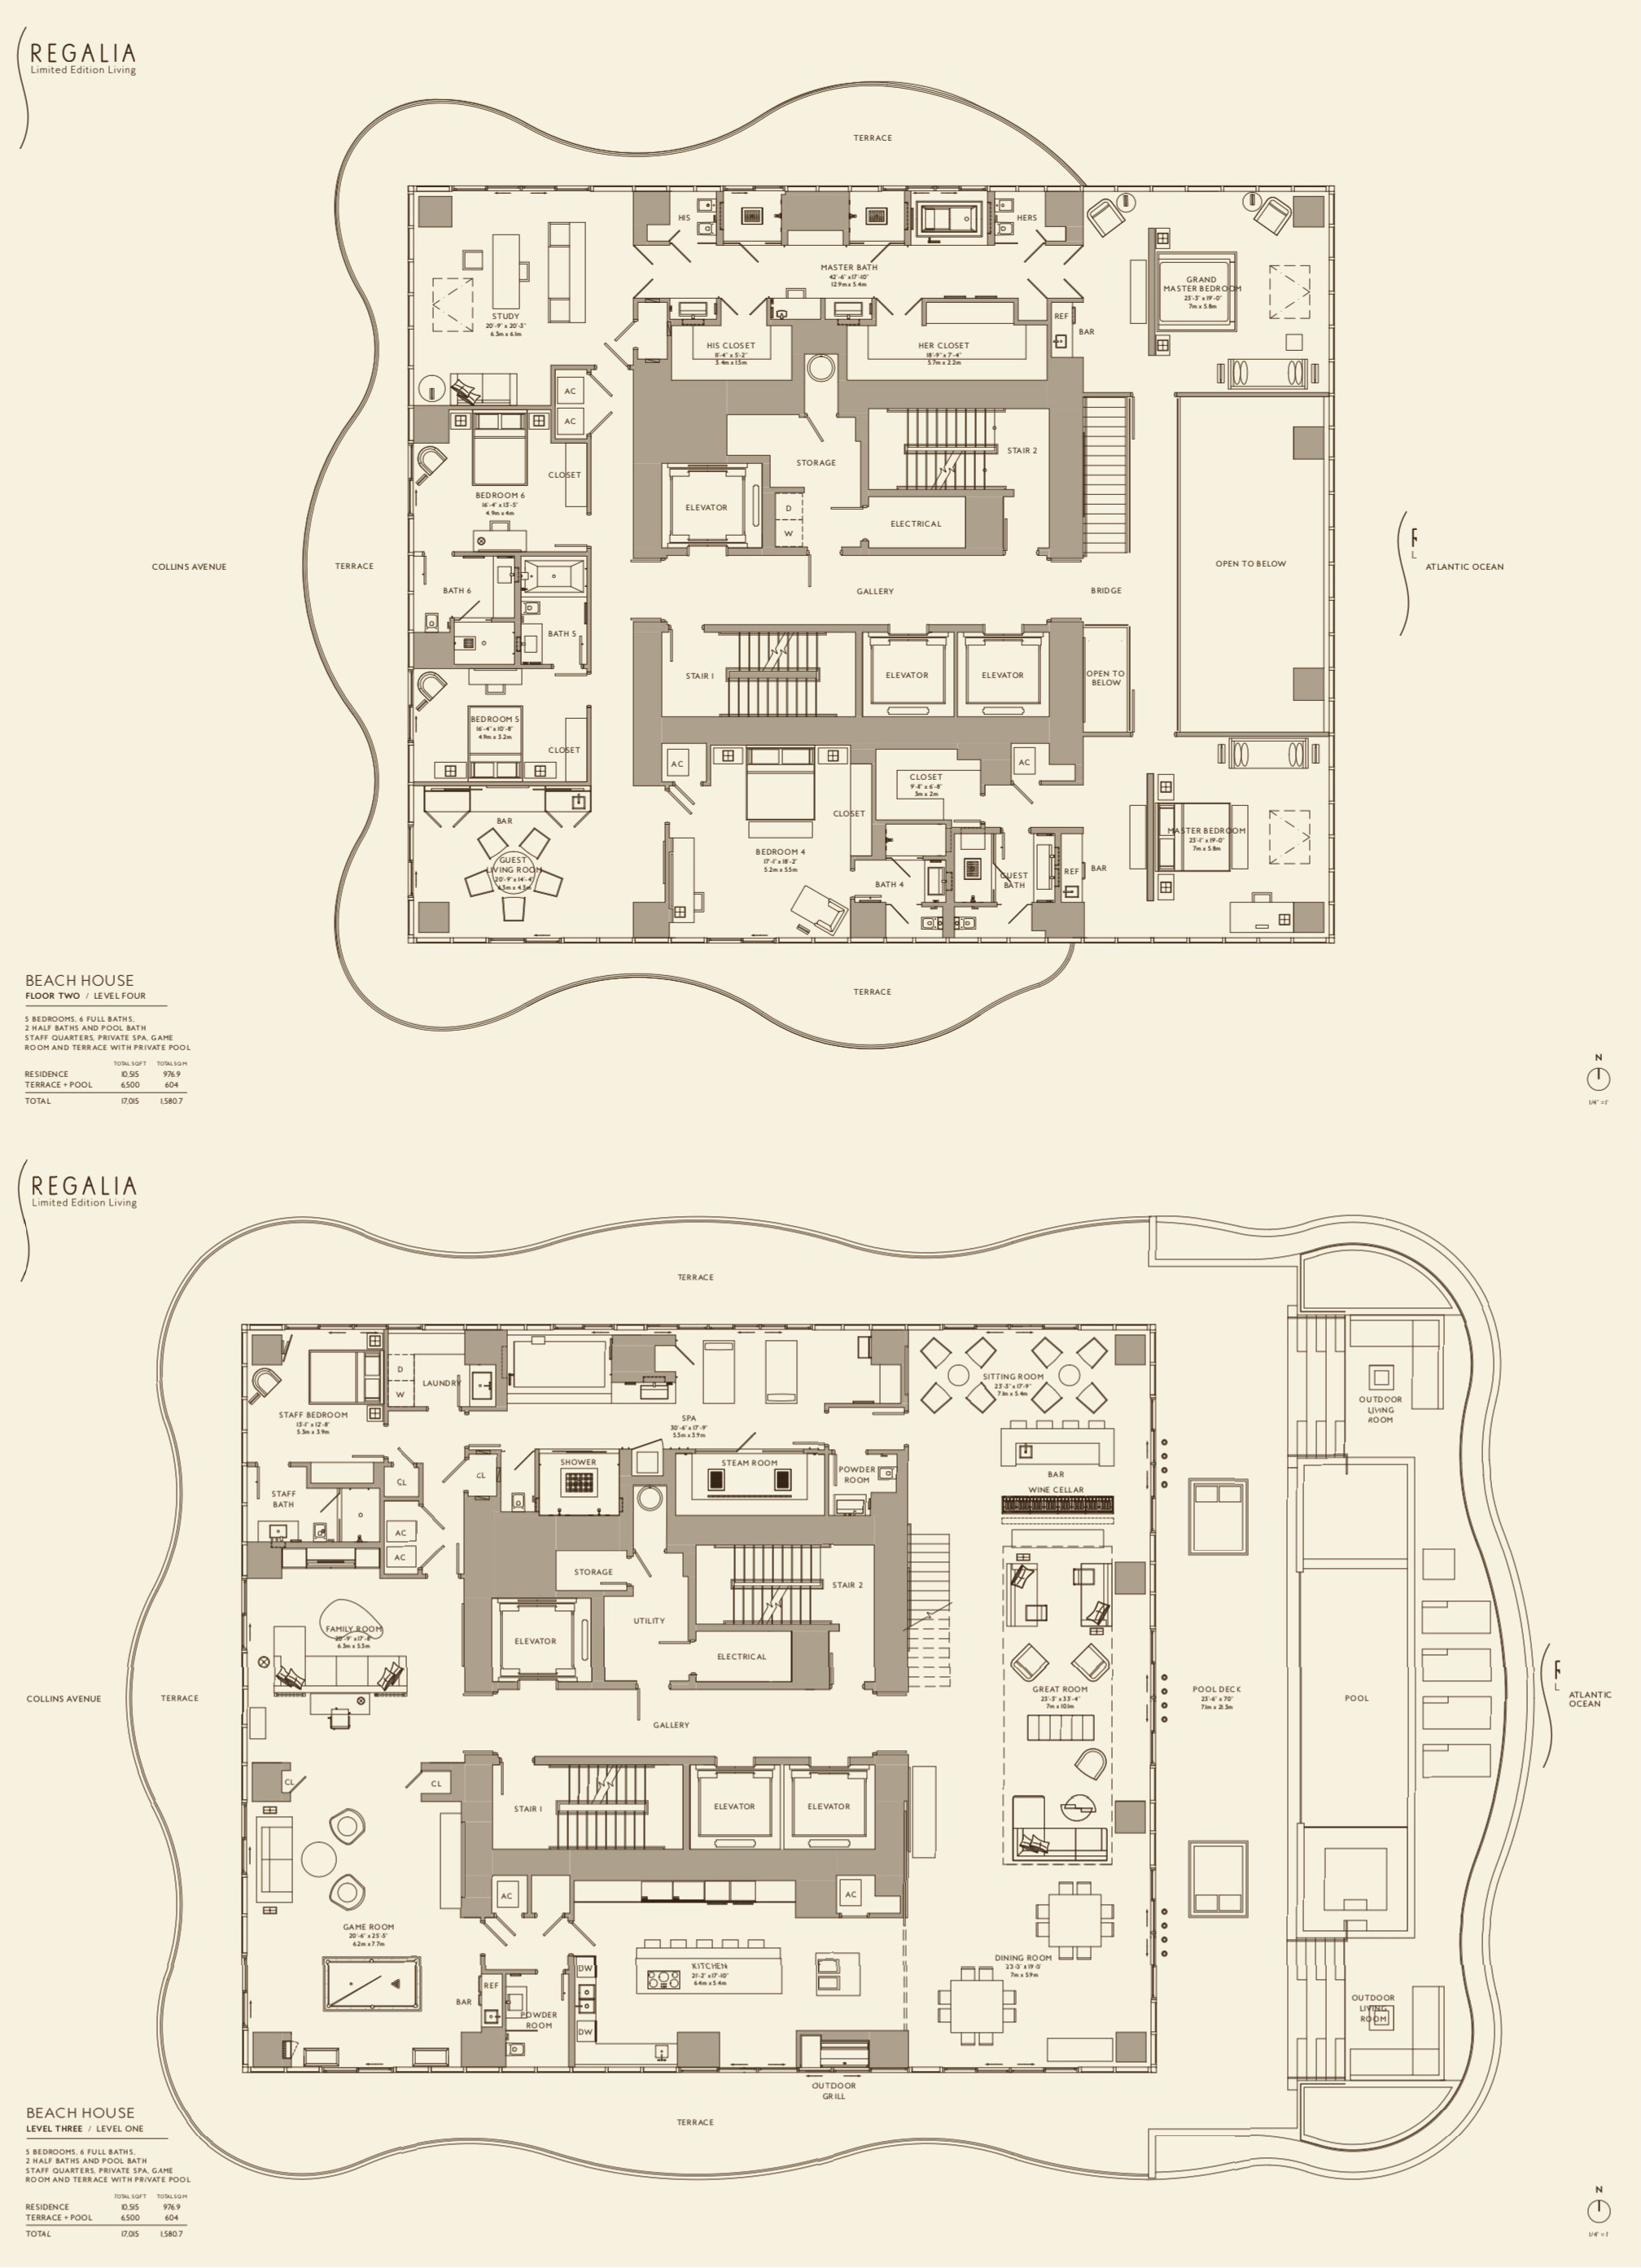 Regalia Miami Beach House Miami Beach House Apartment Floor Plans Floor Plans